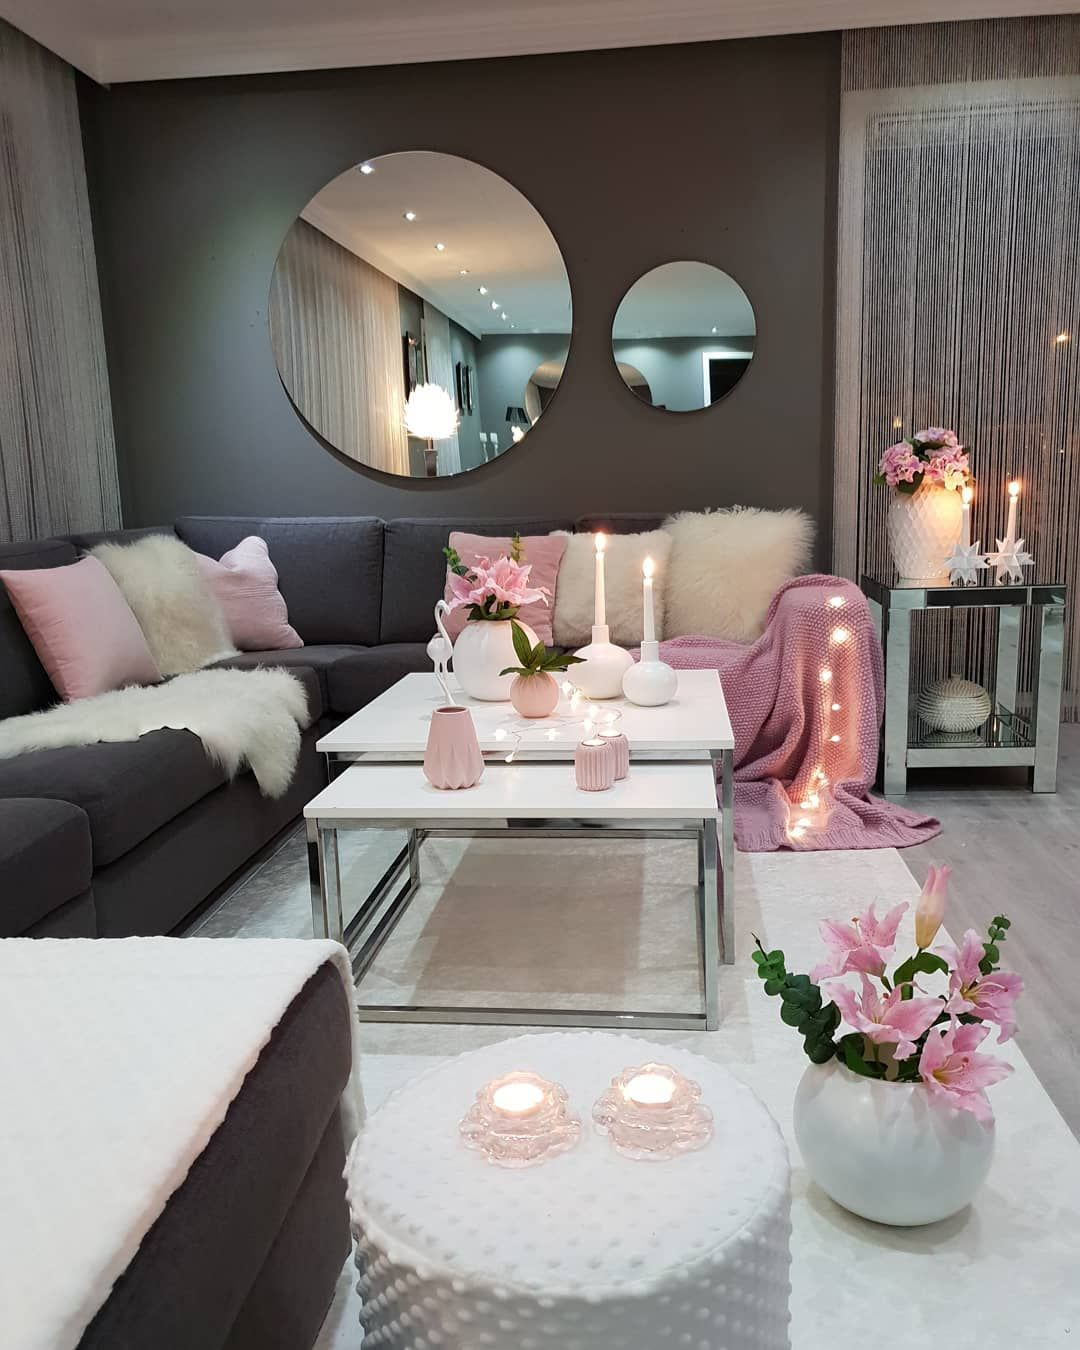 Tips for designing the perfect bedroom design ideas home decor also rh pinterest